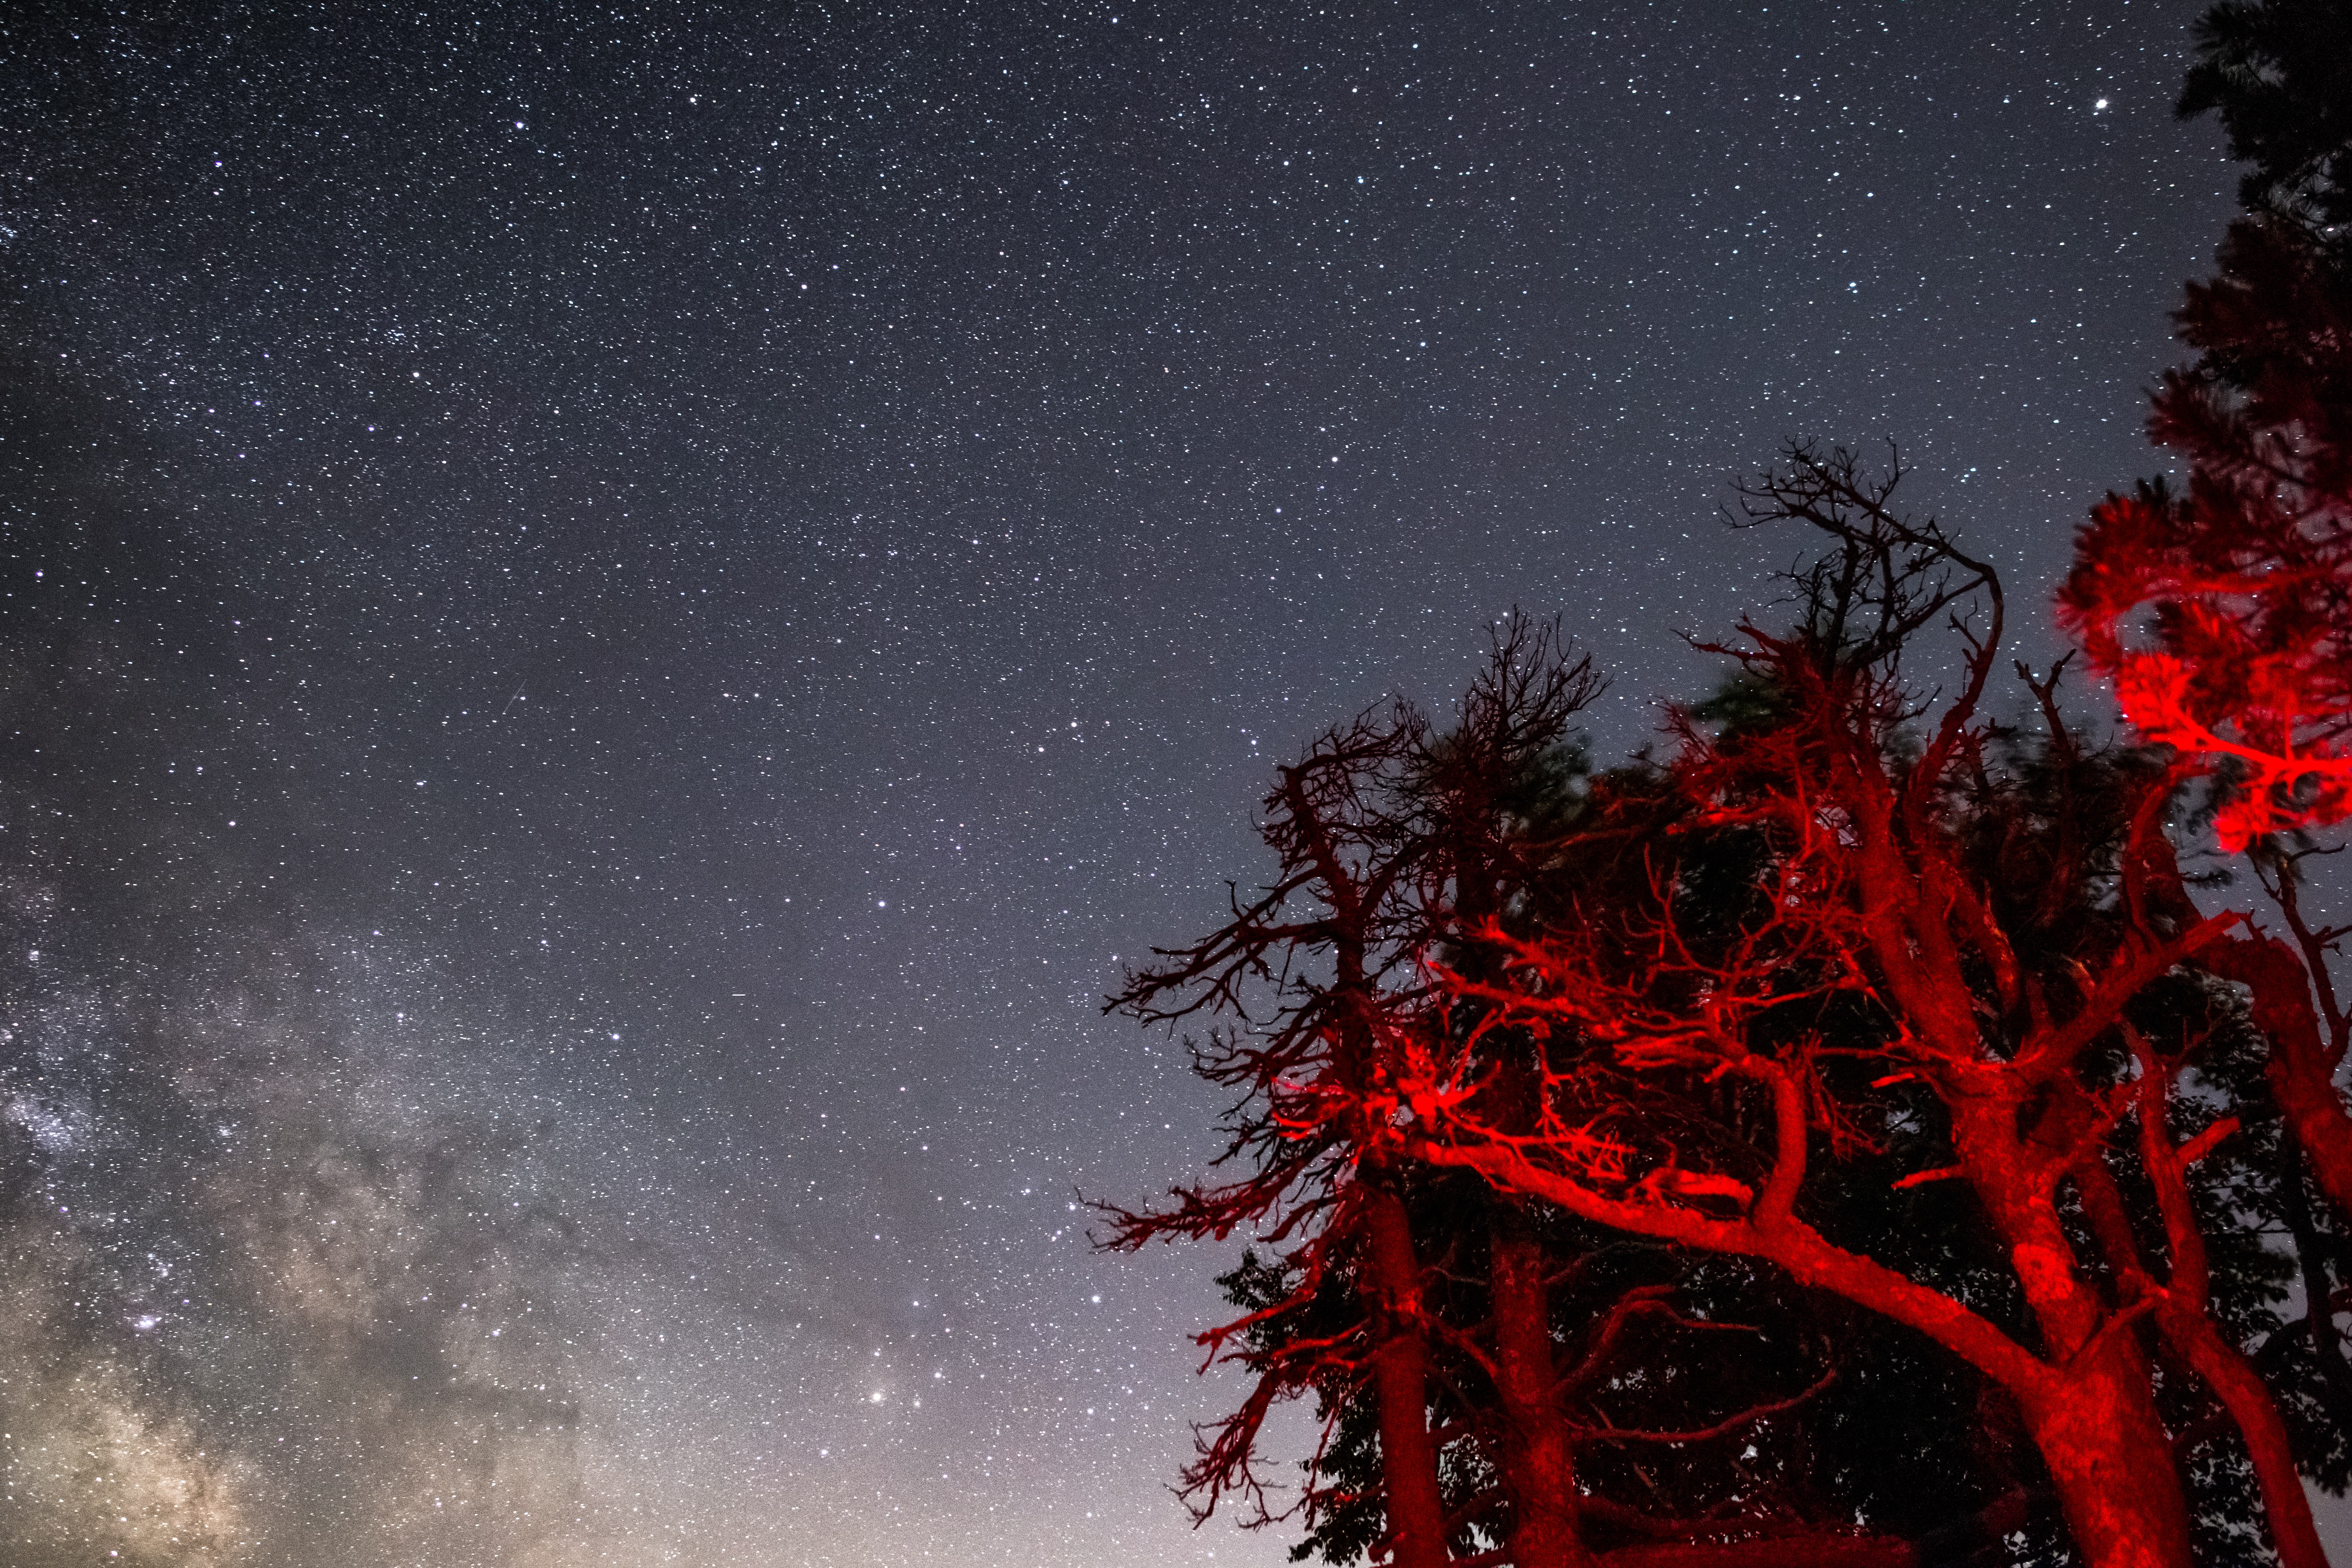 worm's-eye view of tree under starry night